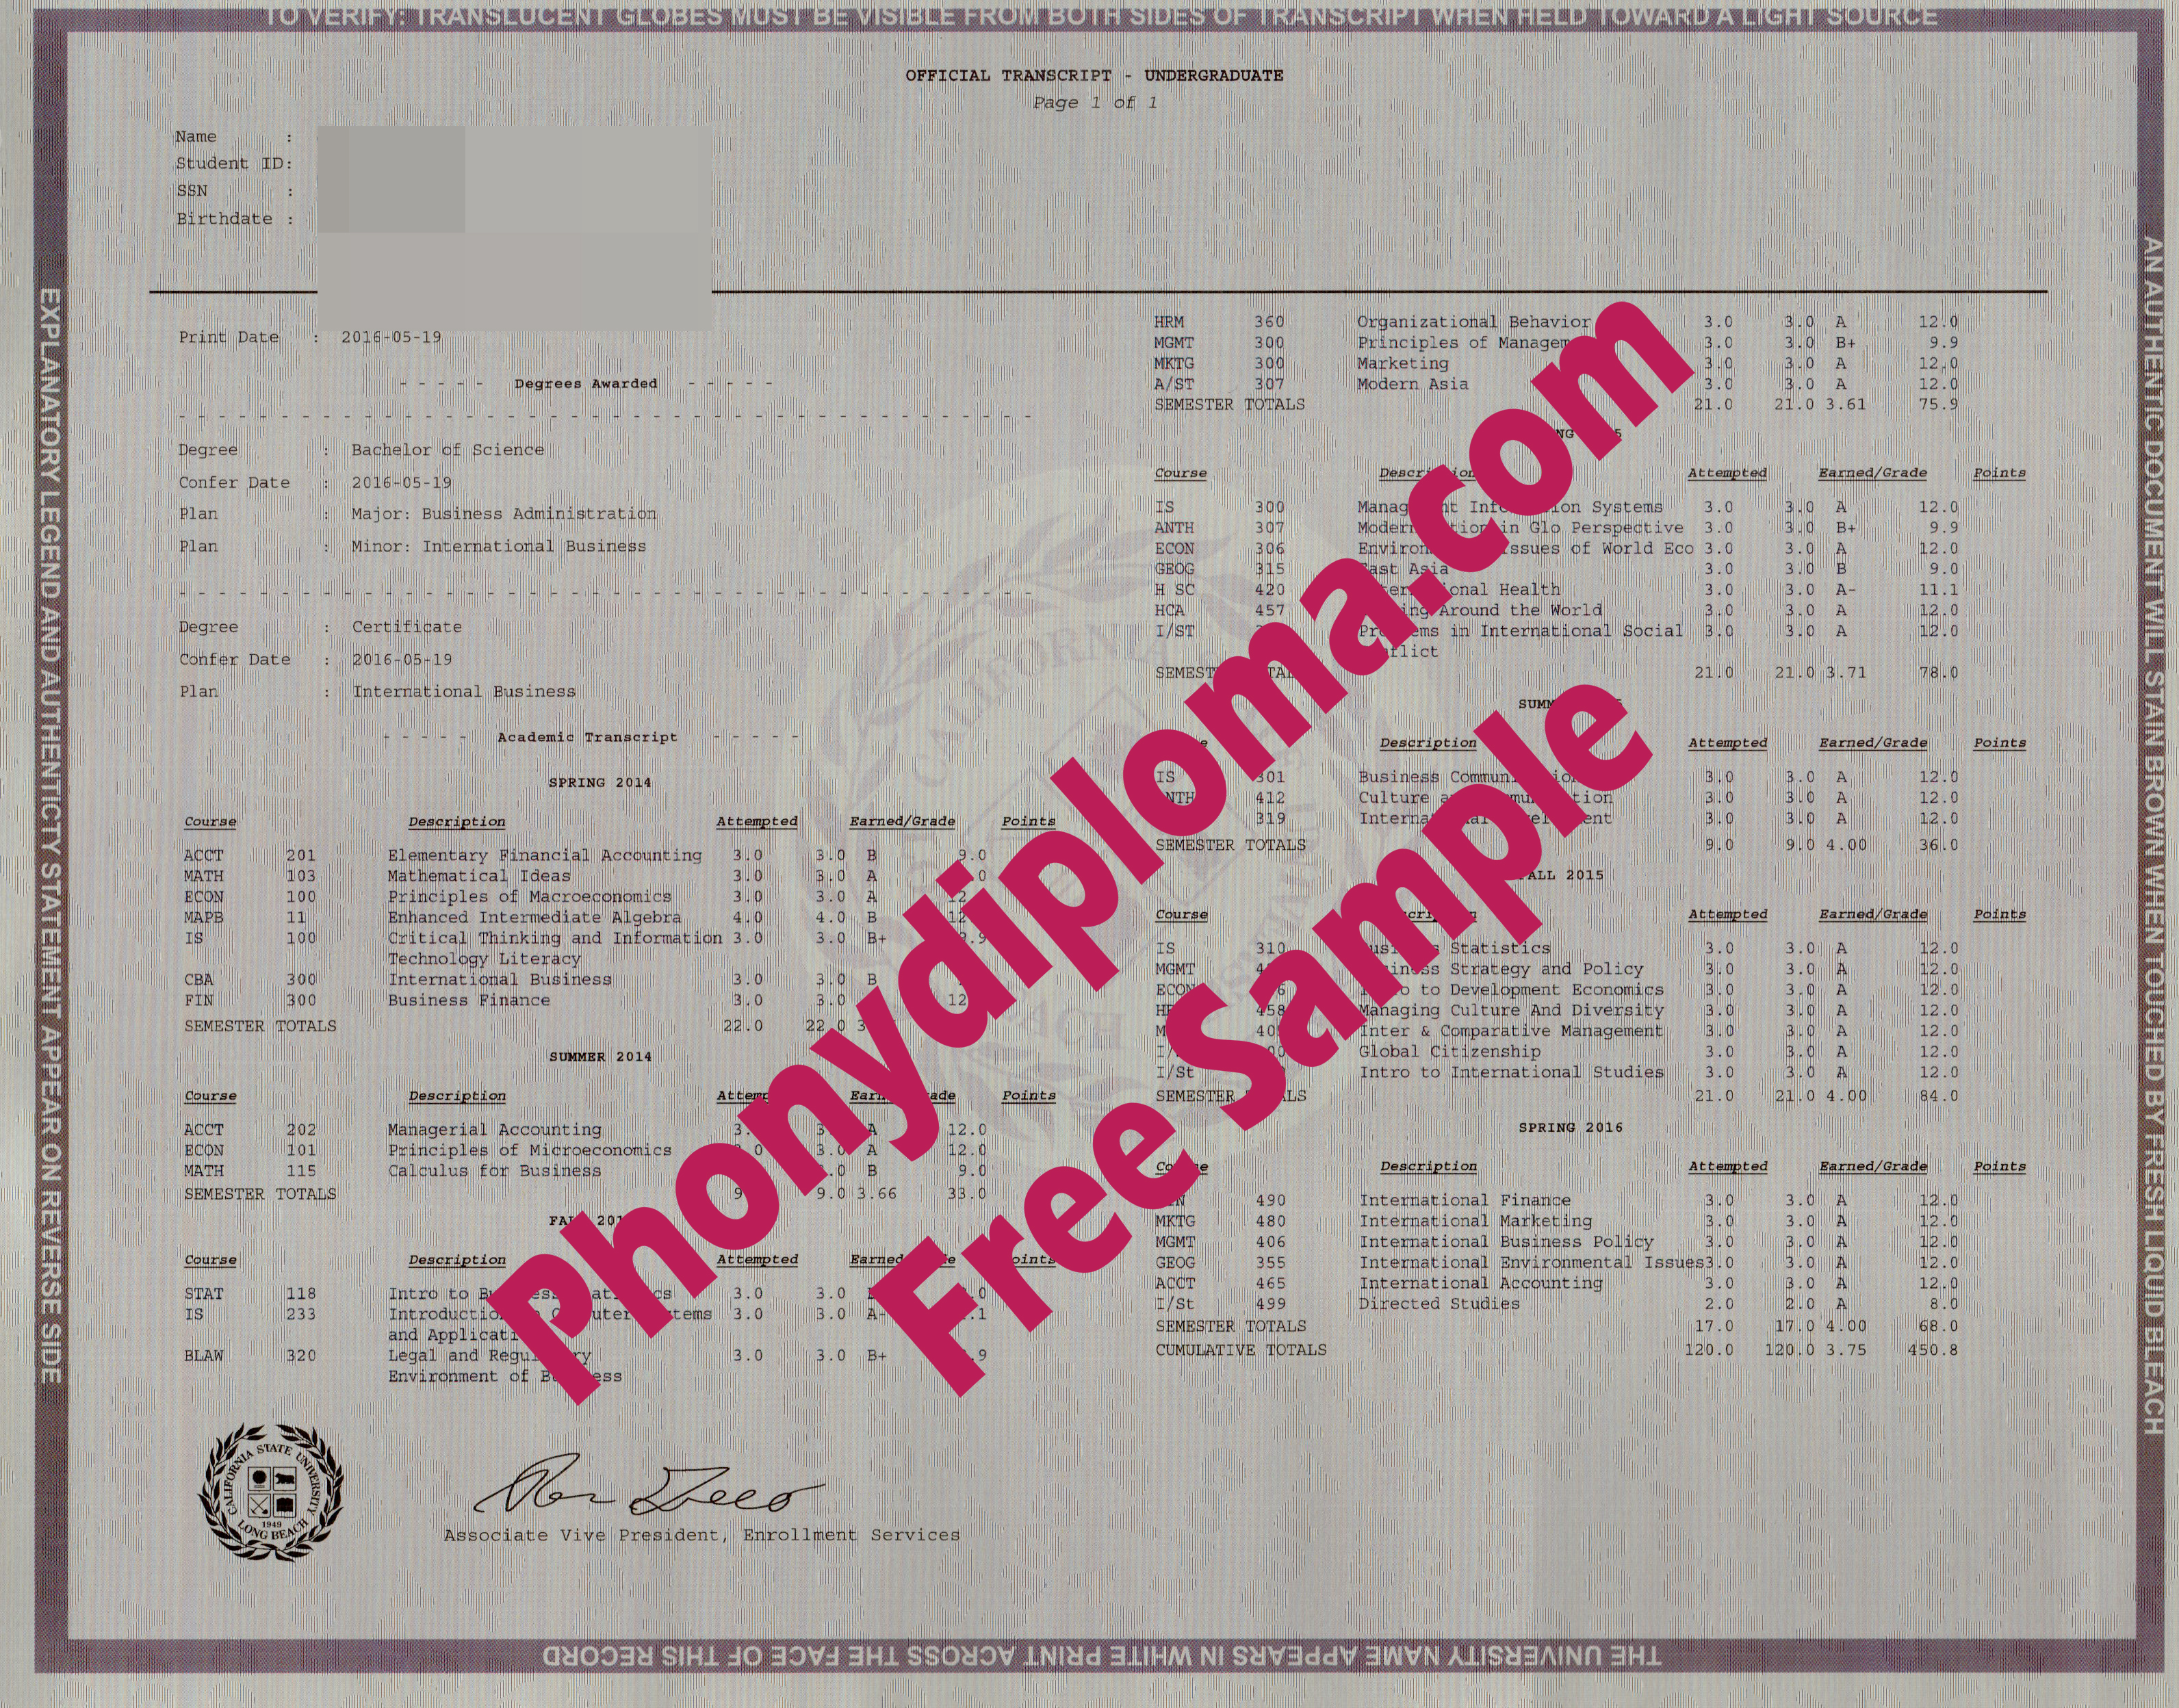 California State University Long Beach Actual Match Transcript Free Sample From Phonydiploma